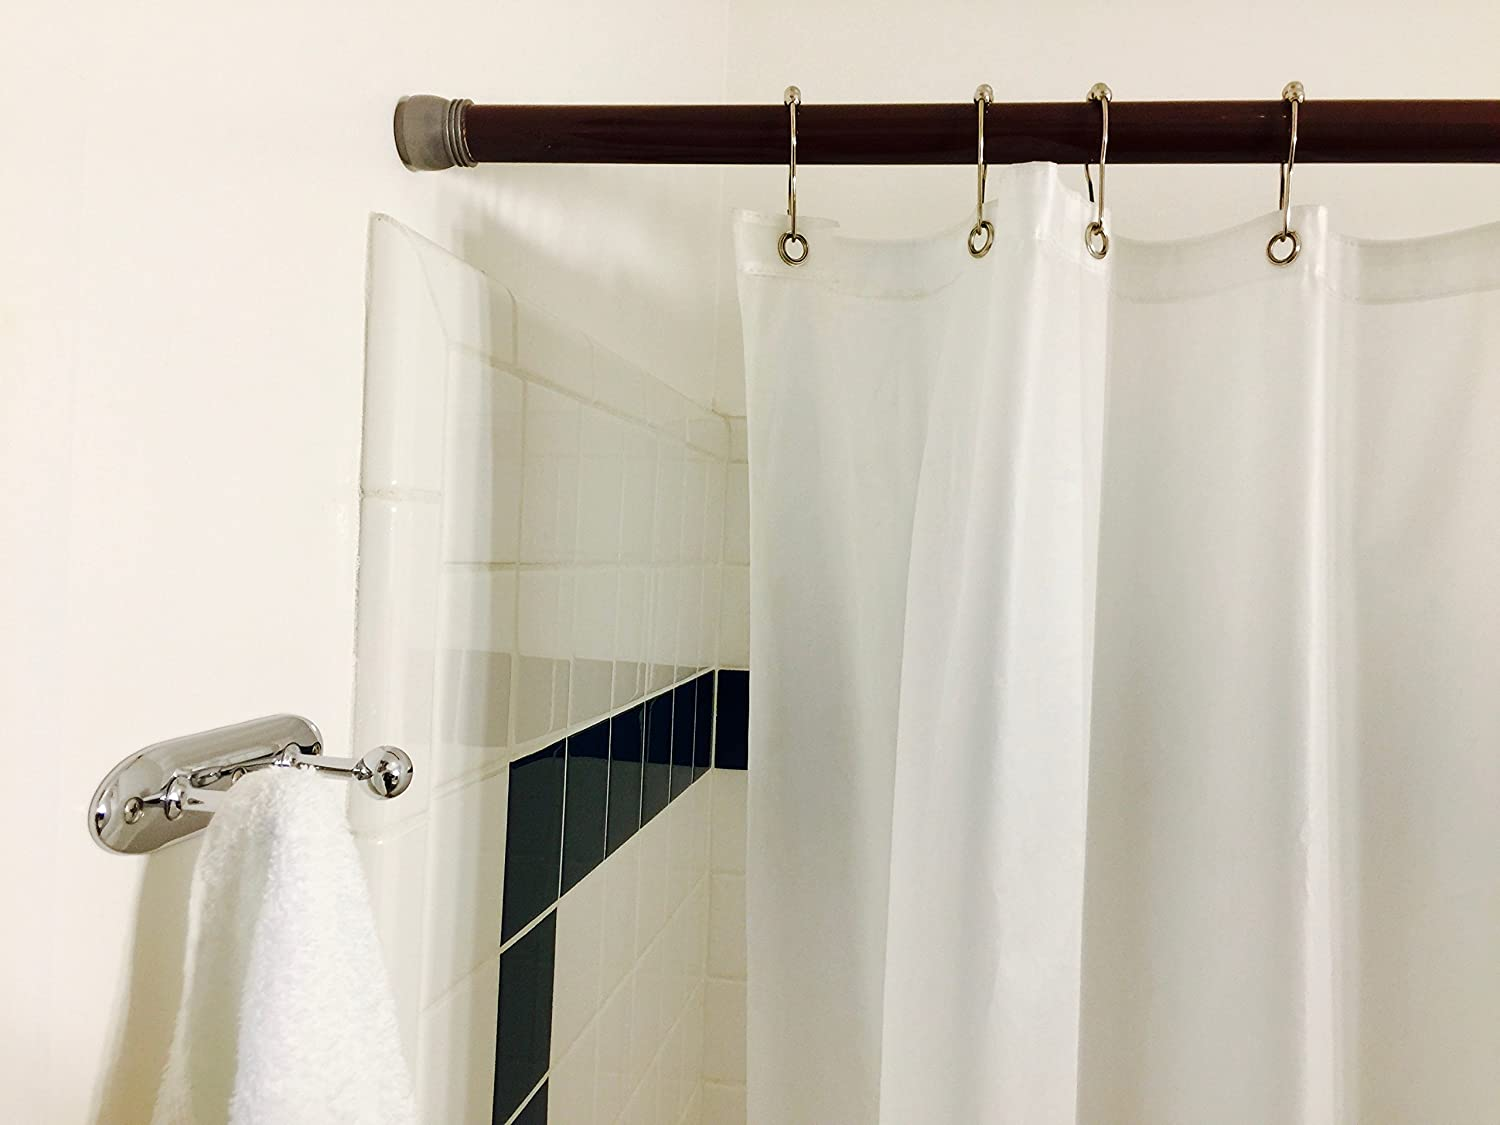 Shower Rod Cover by Jenacor | Rod Cover Rod Covers Plastic Tubing Rod Protective Cover Rod Cover Sleeve | White Plastic Shower Rod Cover 1 inch diameter x 59 inches long 2-Pack SAPIASRC